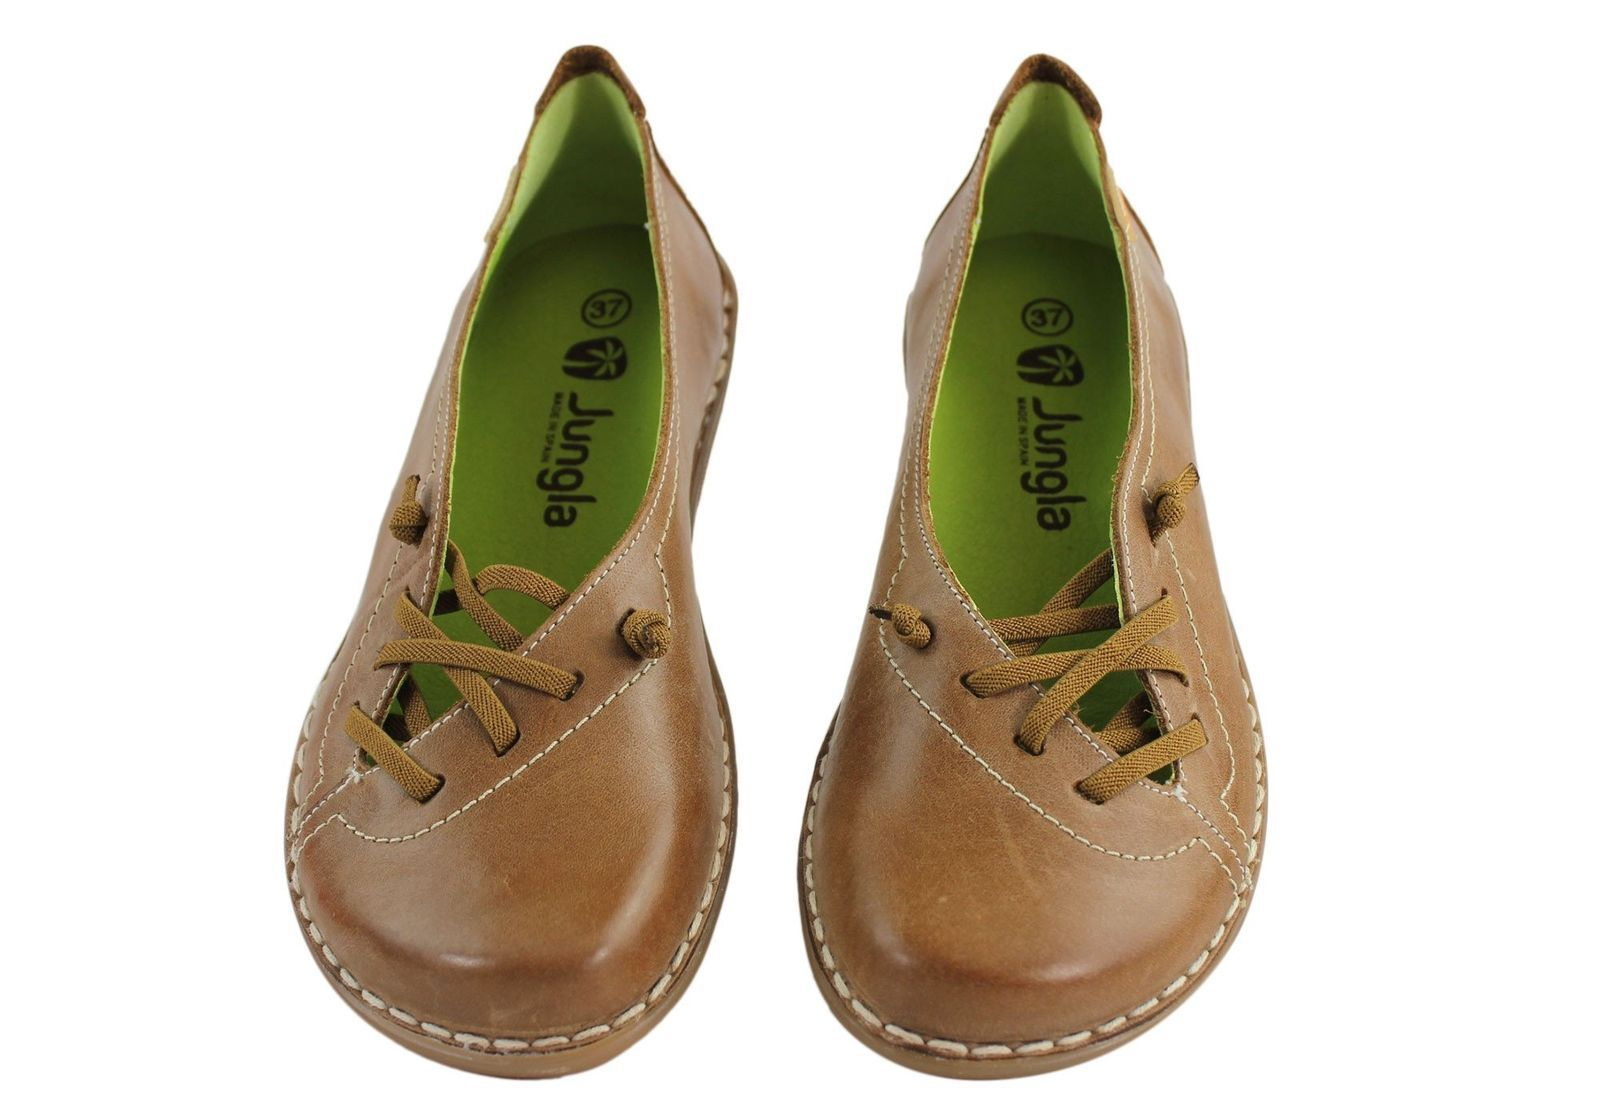 NEW JUNGLA 5906 WOMENS SOFT LEATHER COMFORTABLE SHOES MADE